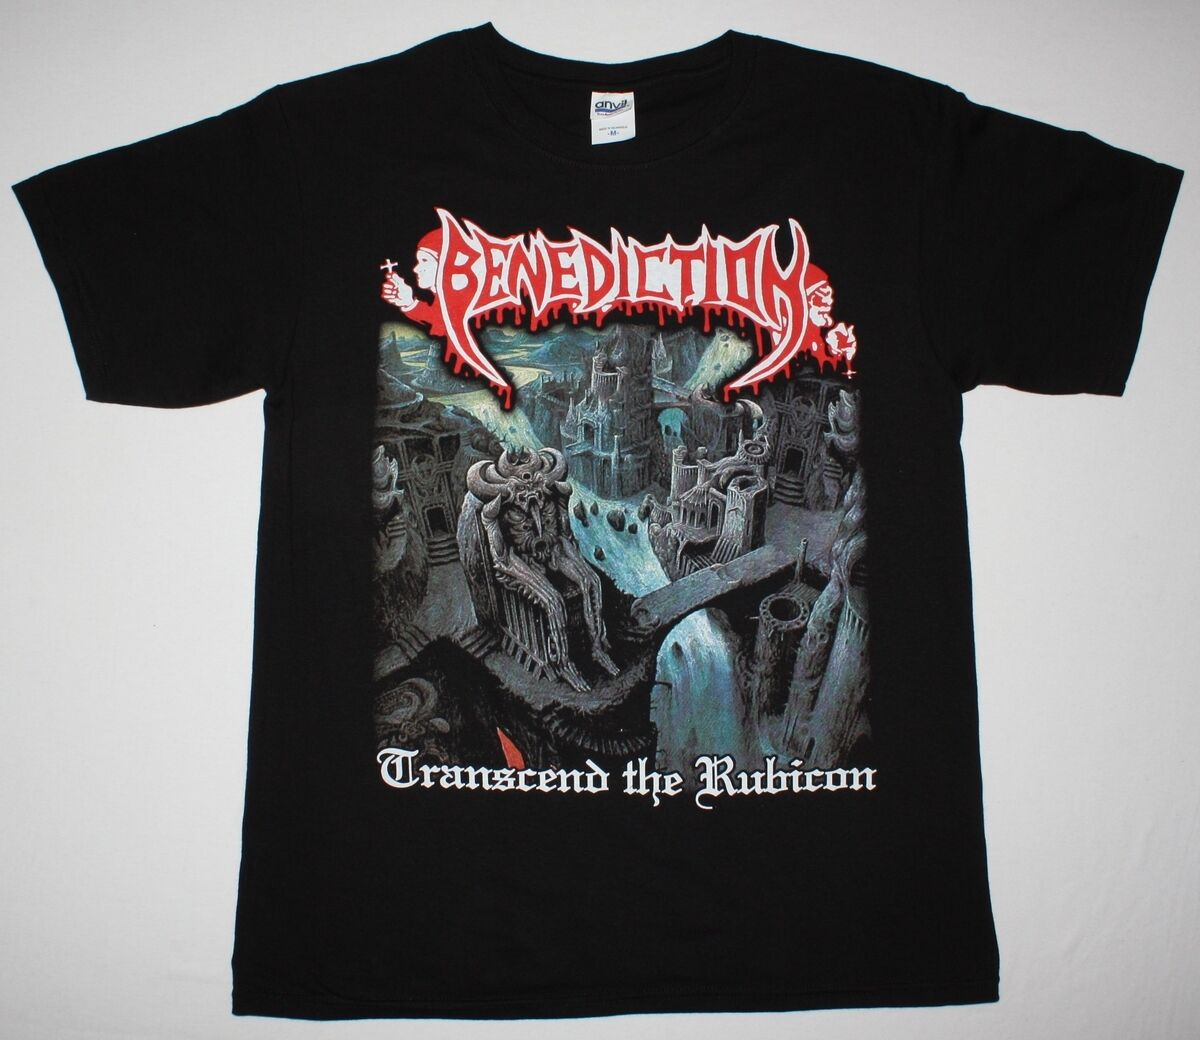 BENEDICTION TRANSCEND THE RUBICON DISMEMBER DEATH METAL NEW BLACK T SHIRT Summer O Neck Tee,100% Cotton Classic tee